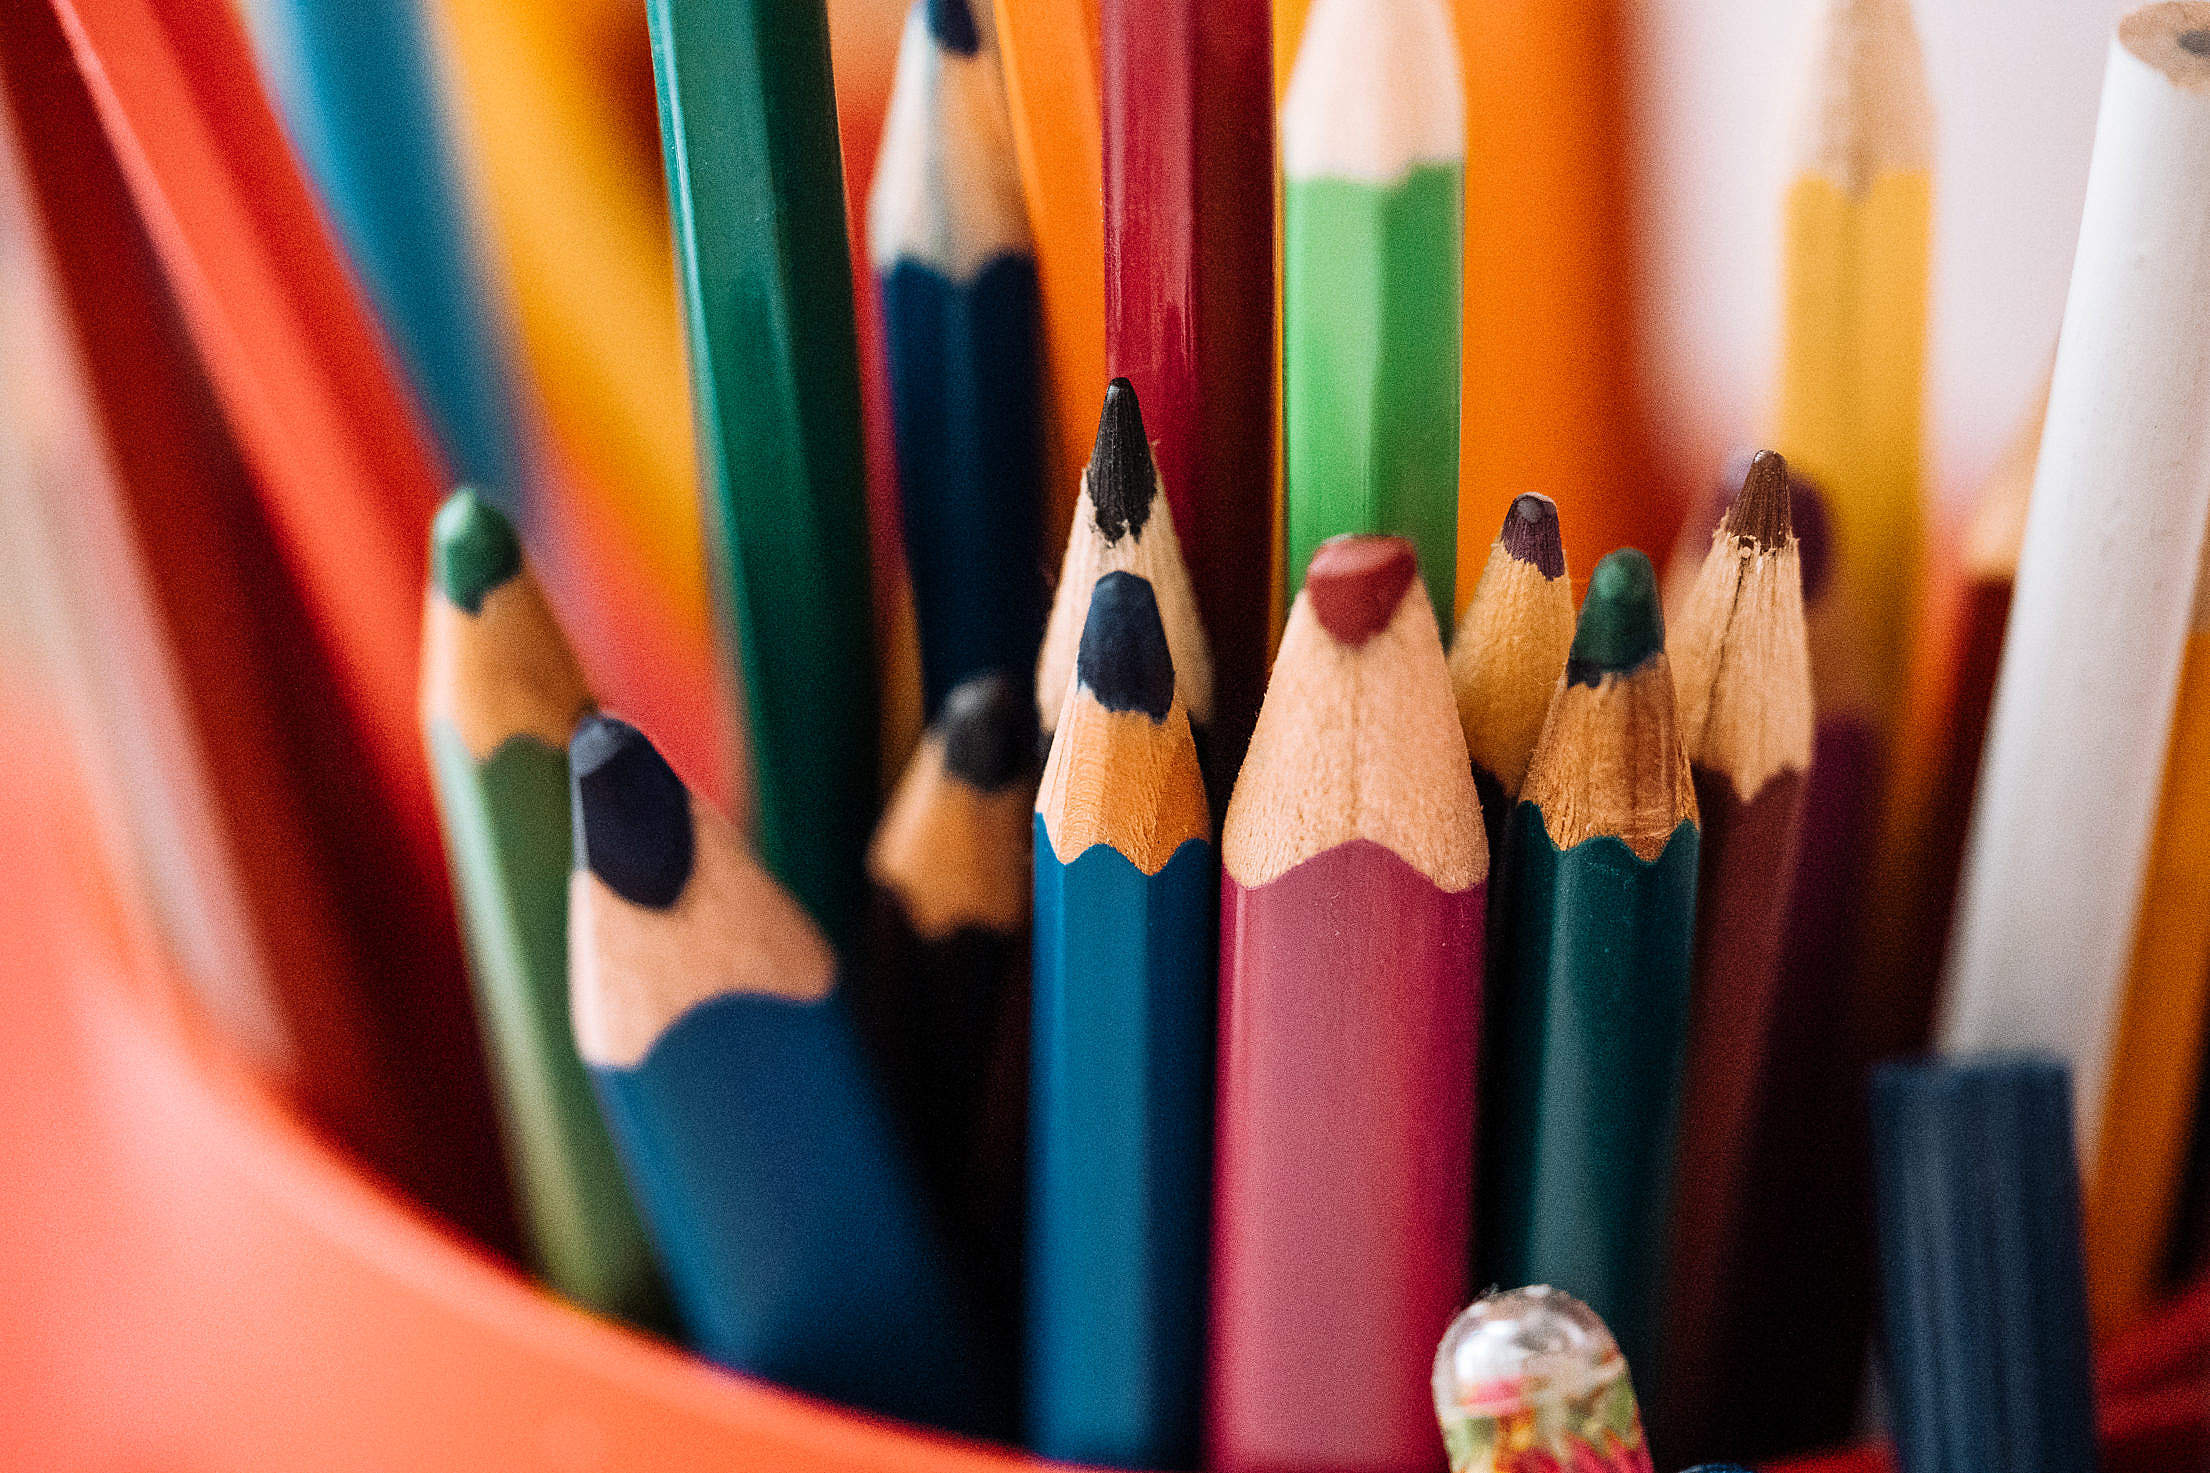 Coloured Pencils Free Stock Photo